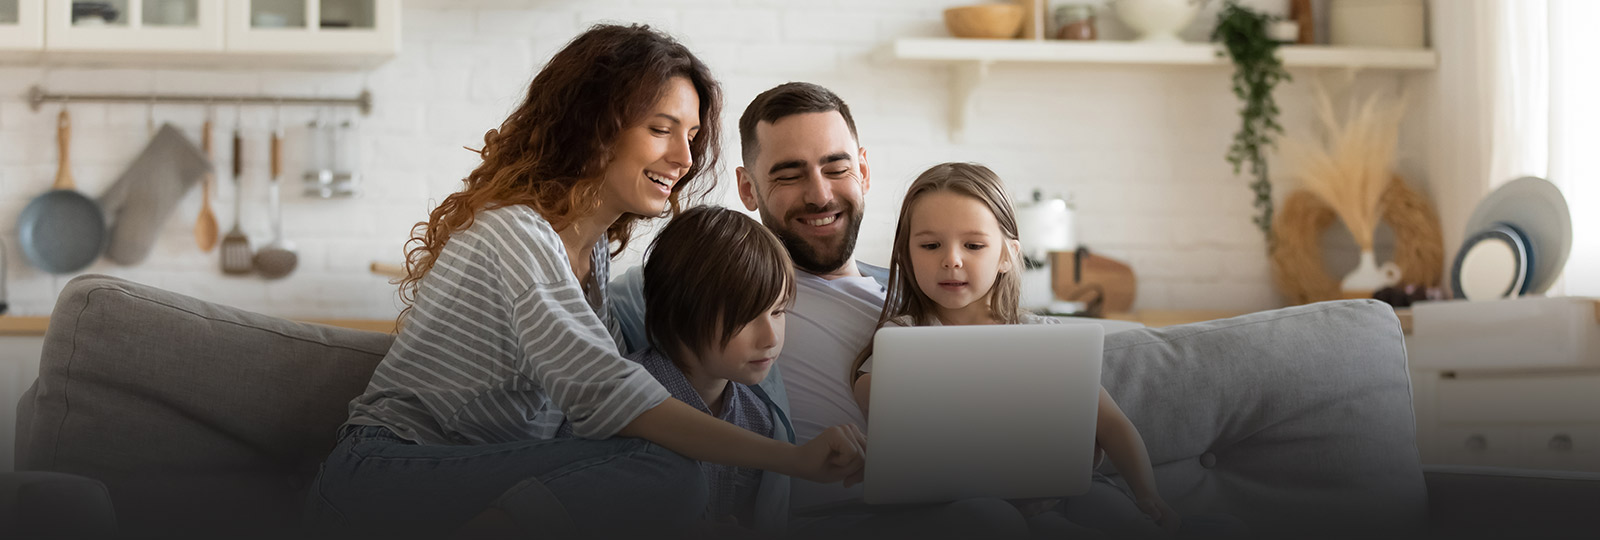 family of four sitting on a couch looking at a laptop